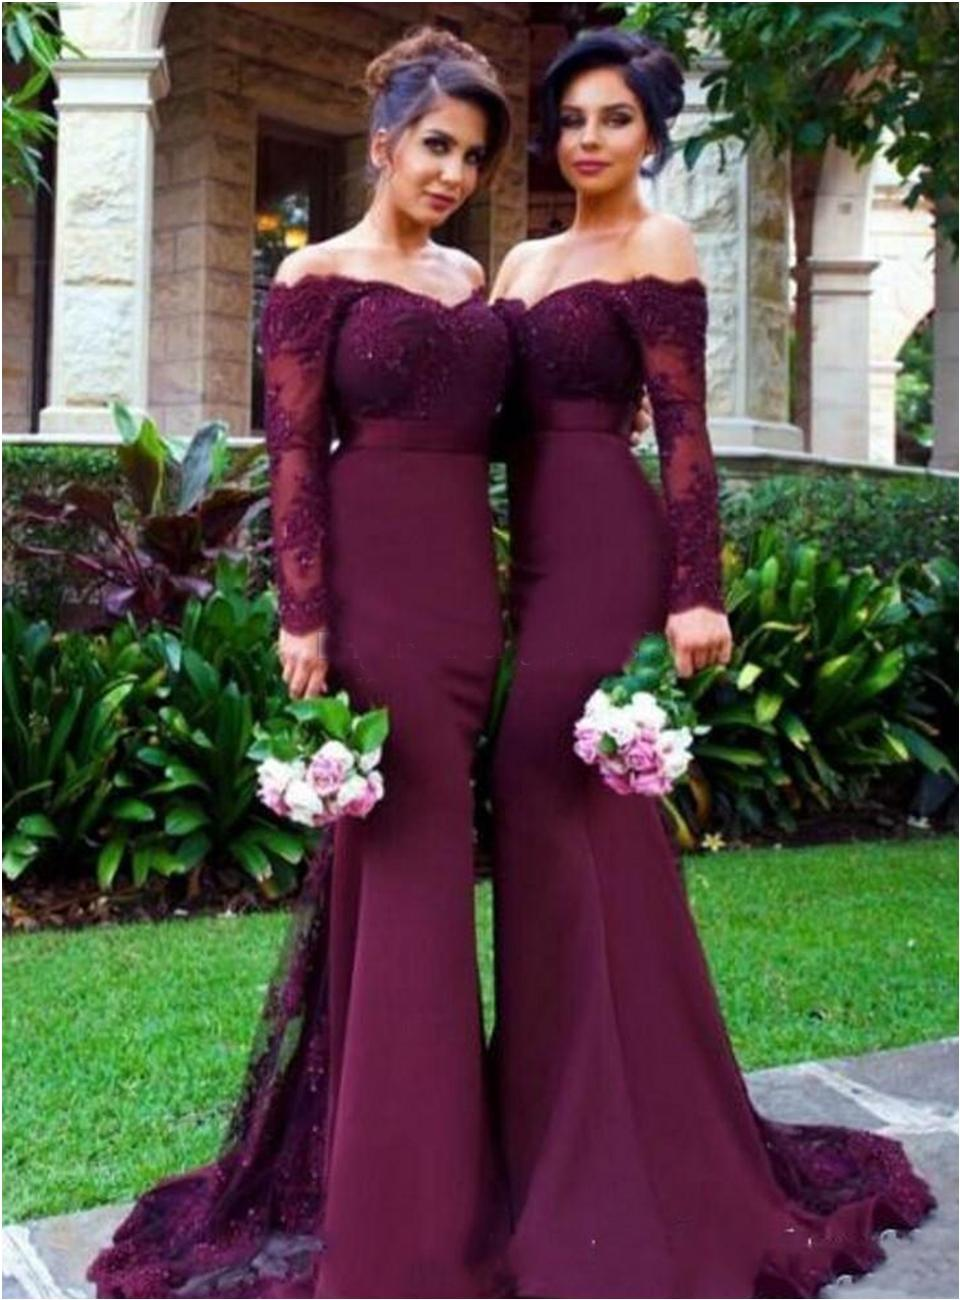 2020 Lace Appliques Off the Shoulder Maid of Honor Gowns Custom Made Formal Evening Dresses Burgundy Long Sleeves Mermaid Bridesmaid Dresses